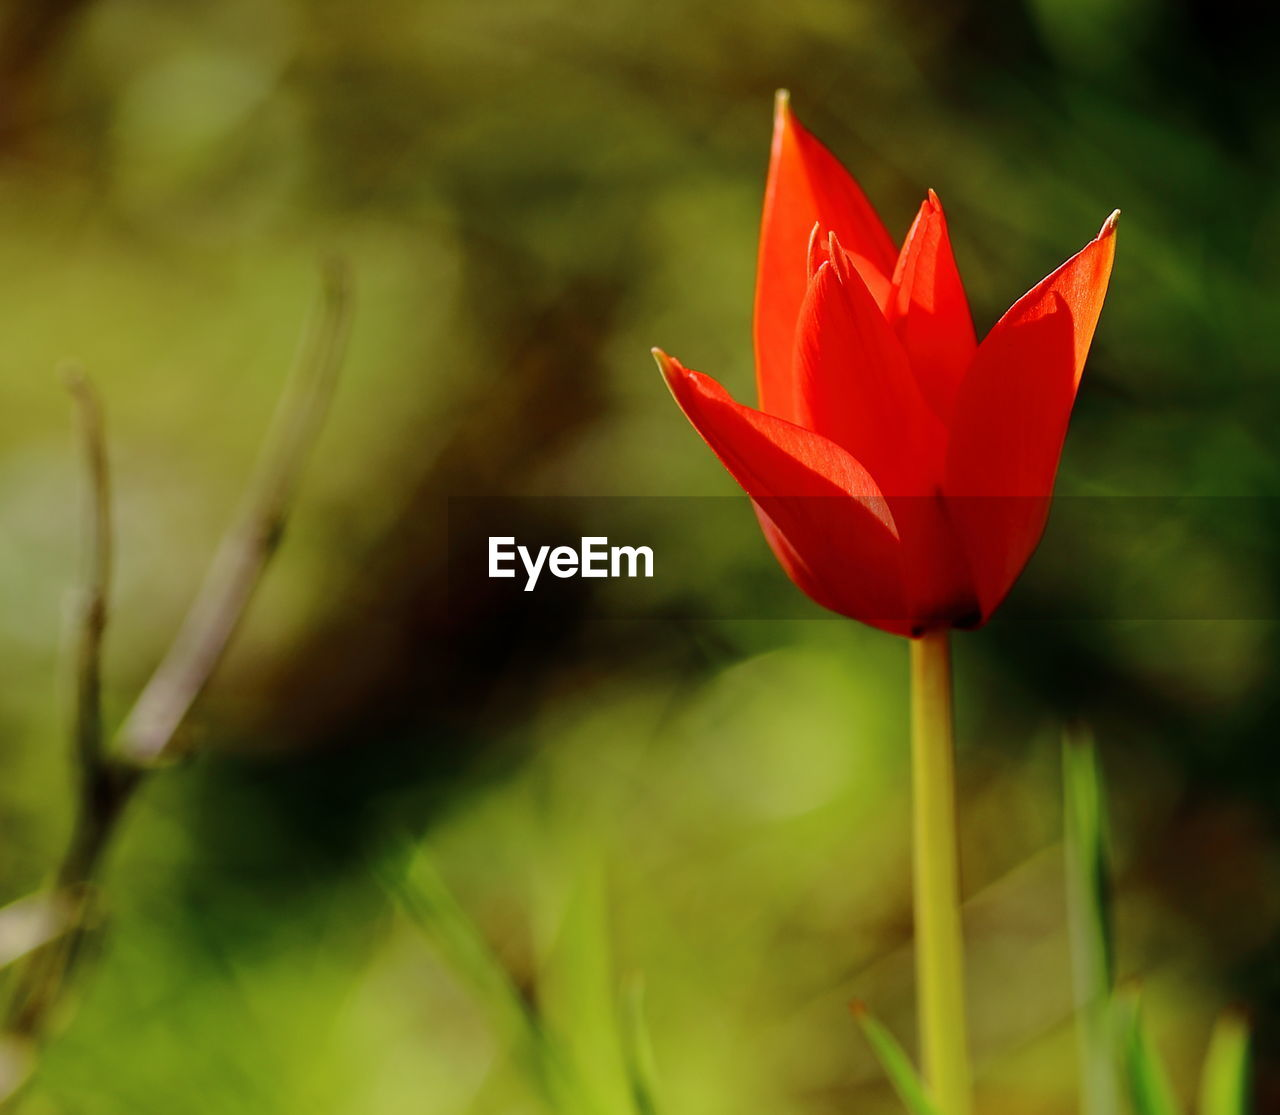 flower, nature, growth, beauty in nature, petal, fragility, red, plant, flower head, close-up, outdoors, freshness, no people, day, blooming